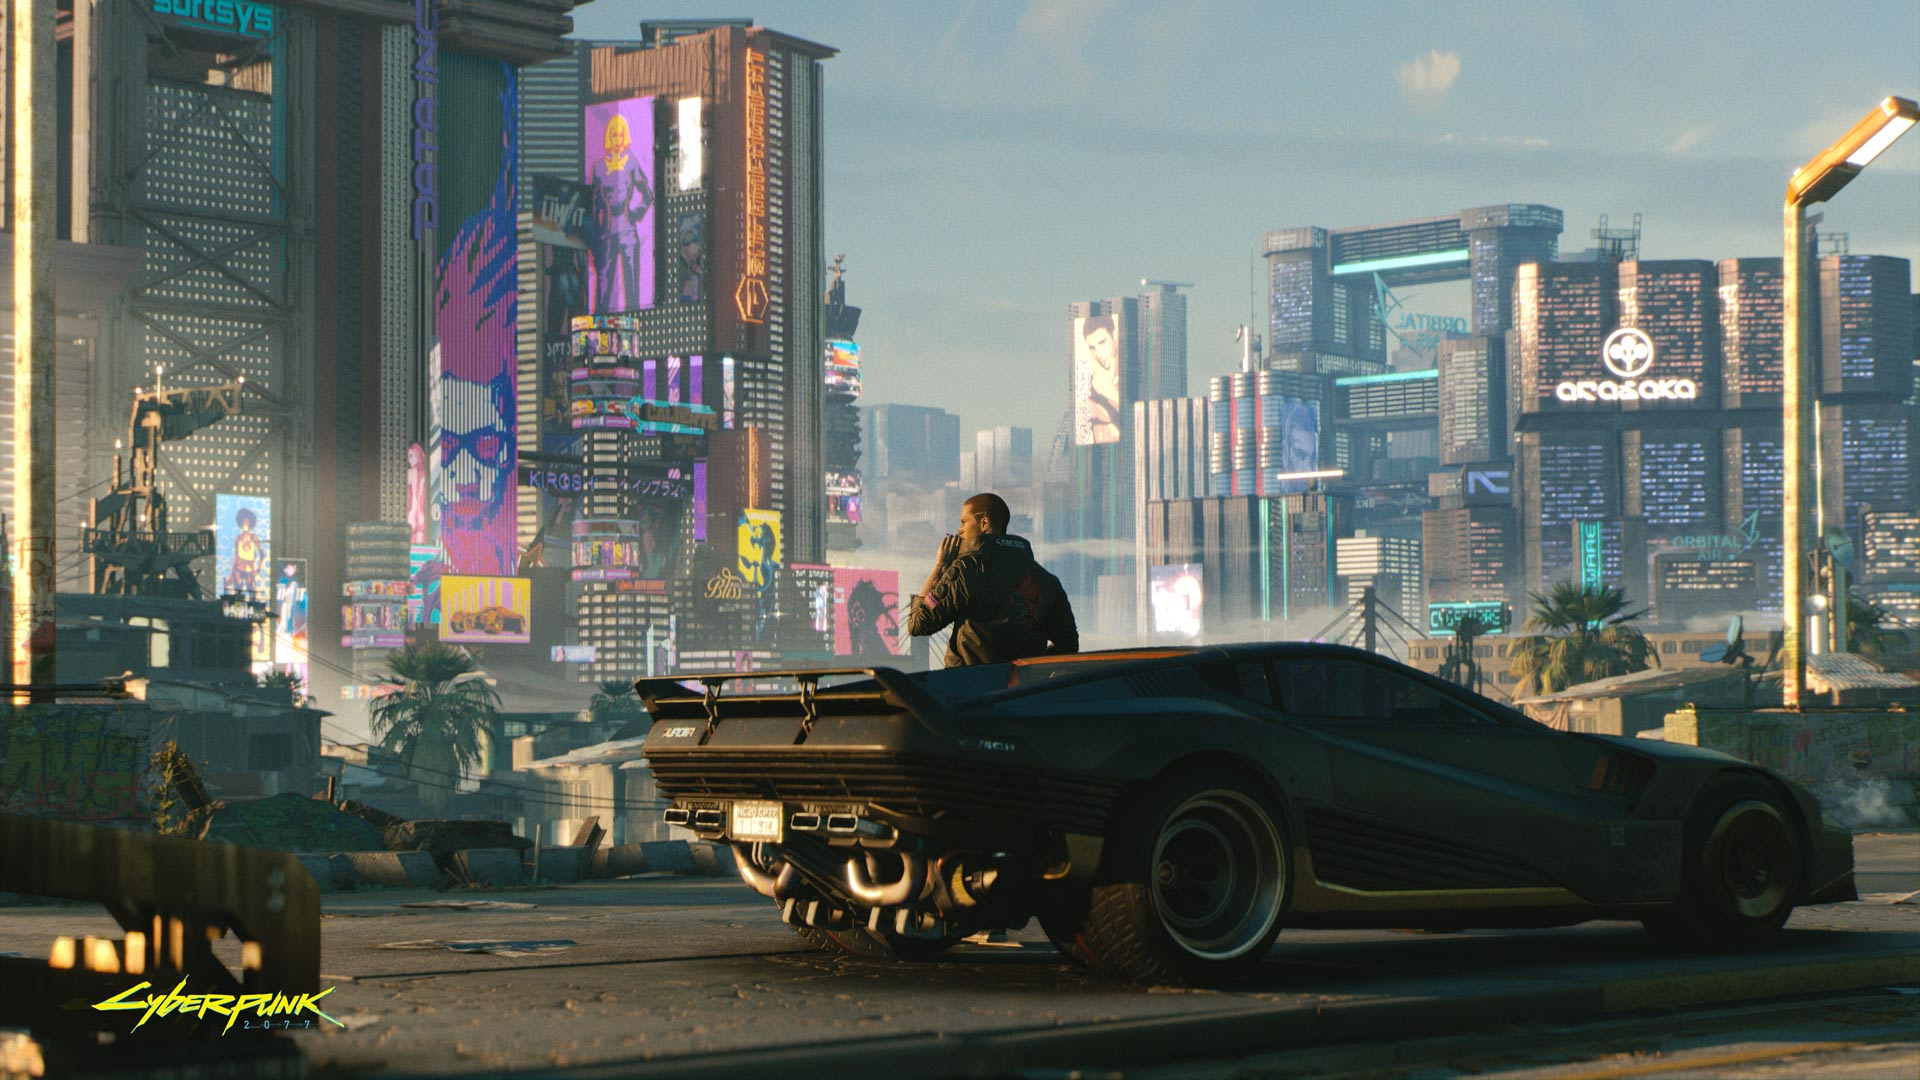 Upcoming 'Cyberpunk 2077' Game Shares 48 Minutes Gameplay [Watch] A mercenary on the rise en